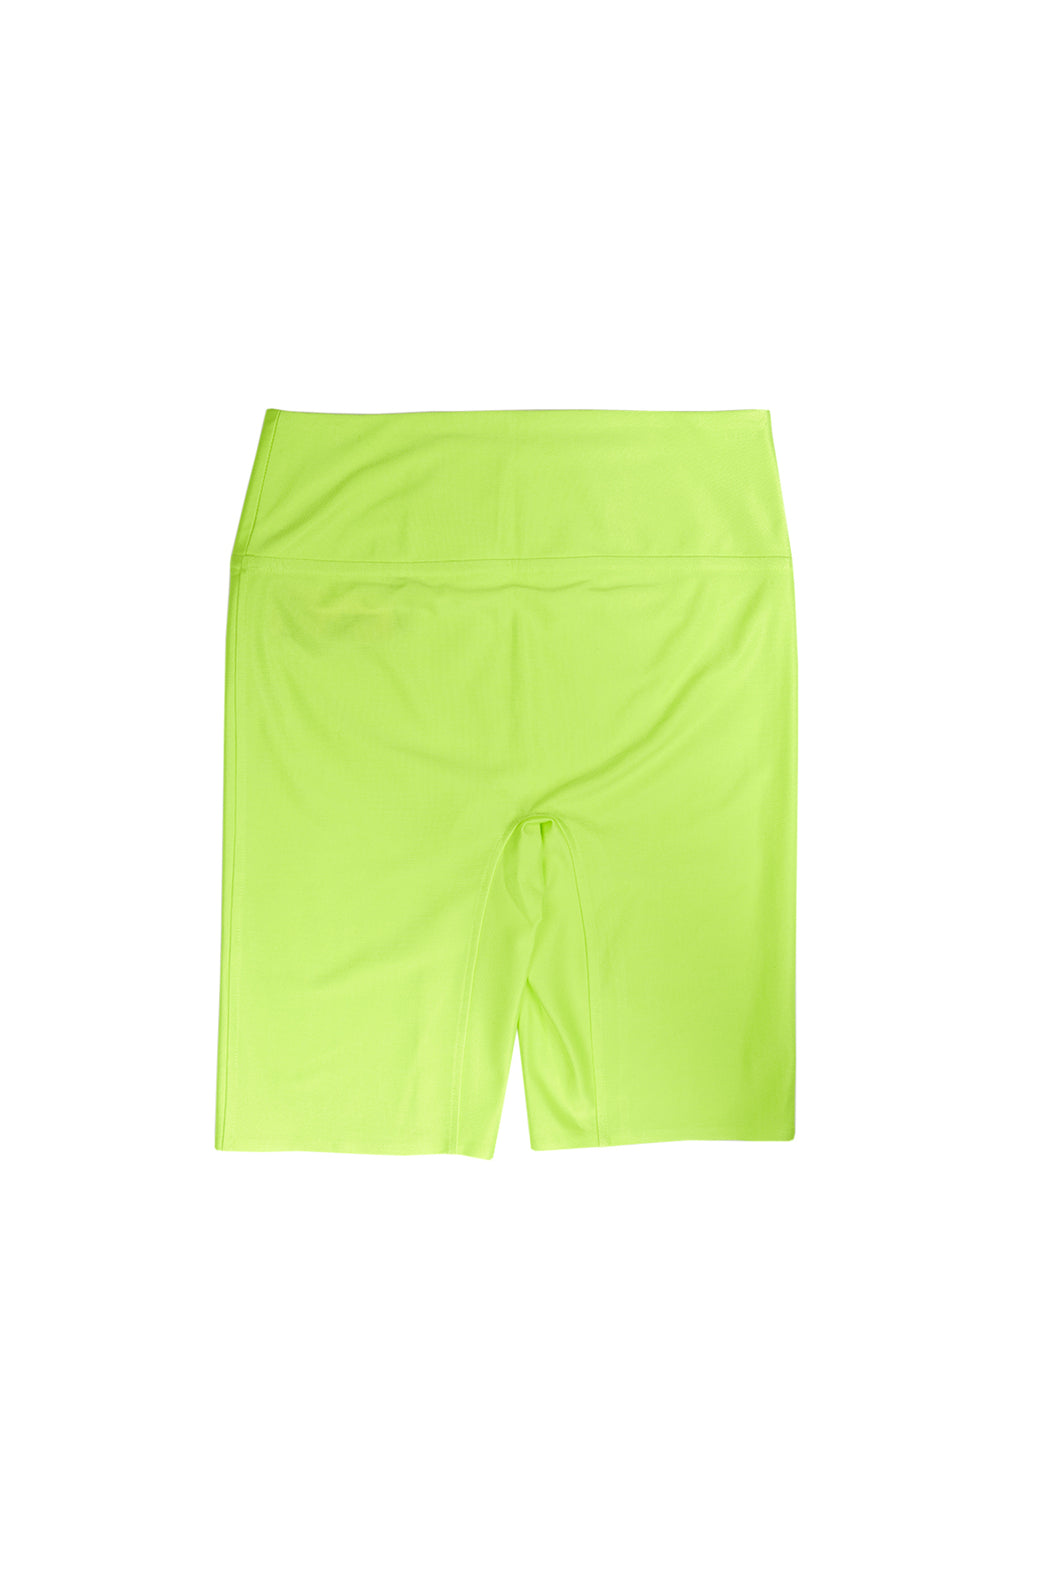 Glossy Half Leggings - Neon Yellow